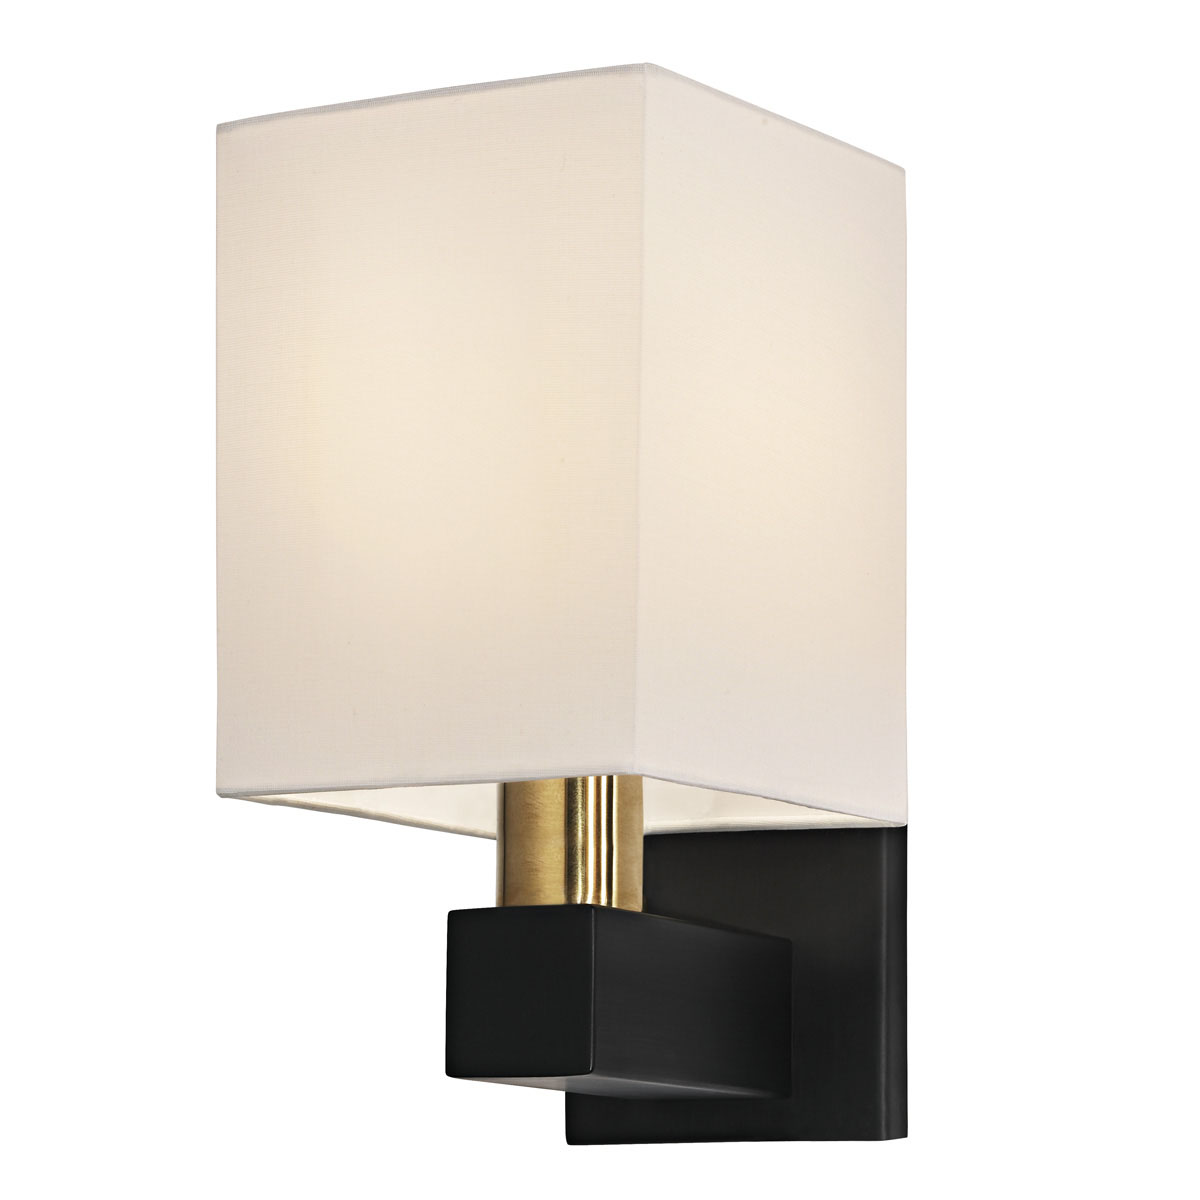 Cubo Sconce